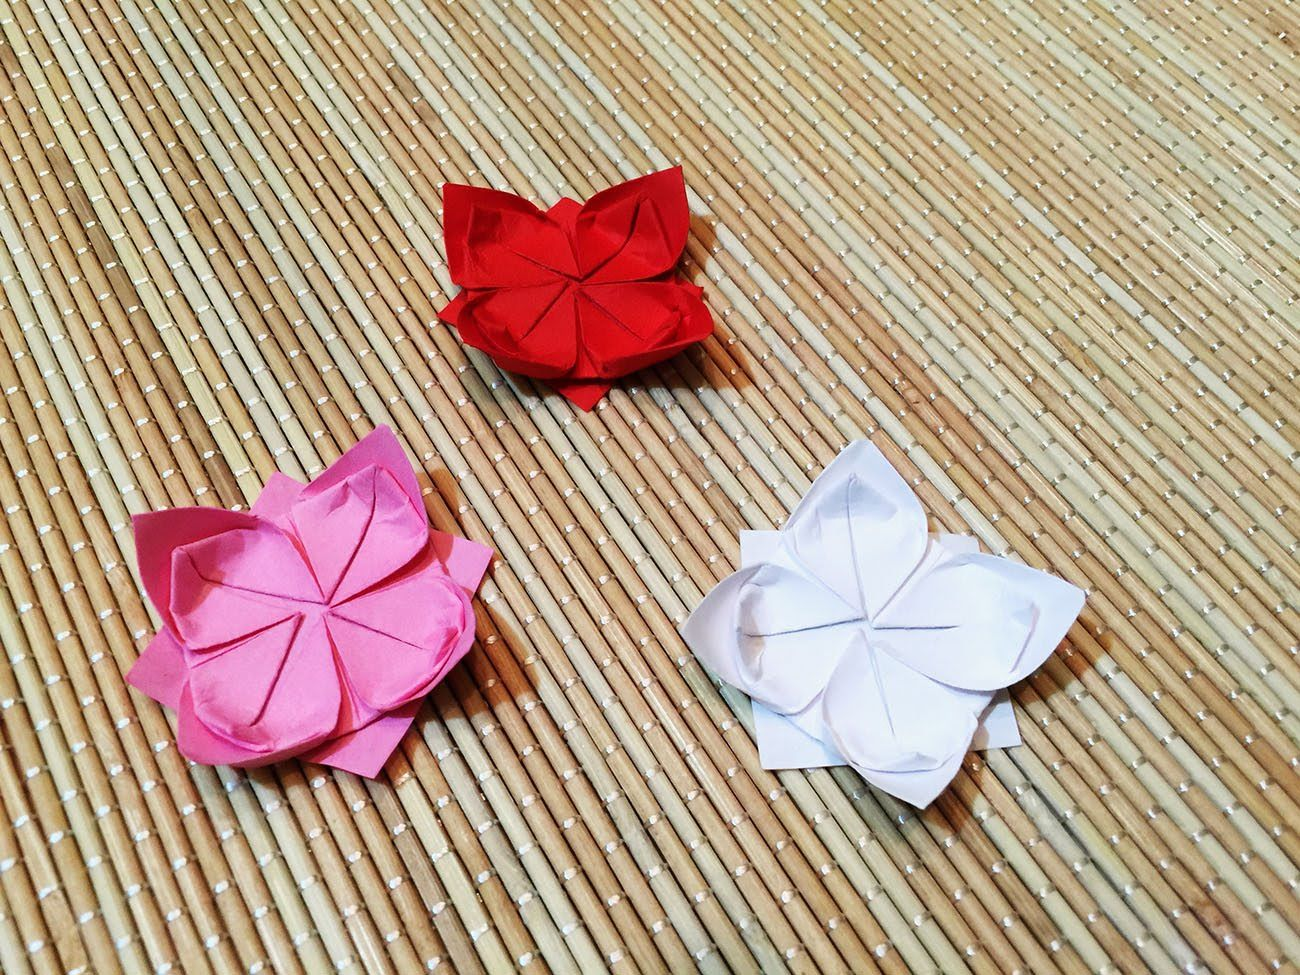 Origami lotus flower how to make a lotus flower origami origami lotus flower how to make a lotus flower izmirmasajfo Images